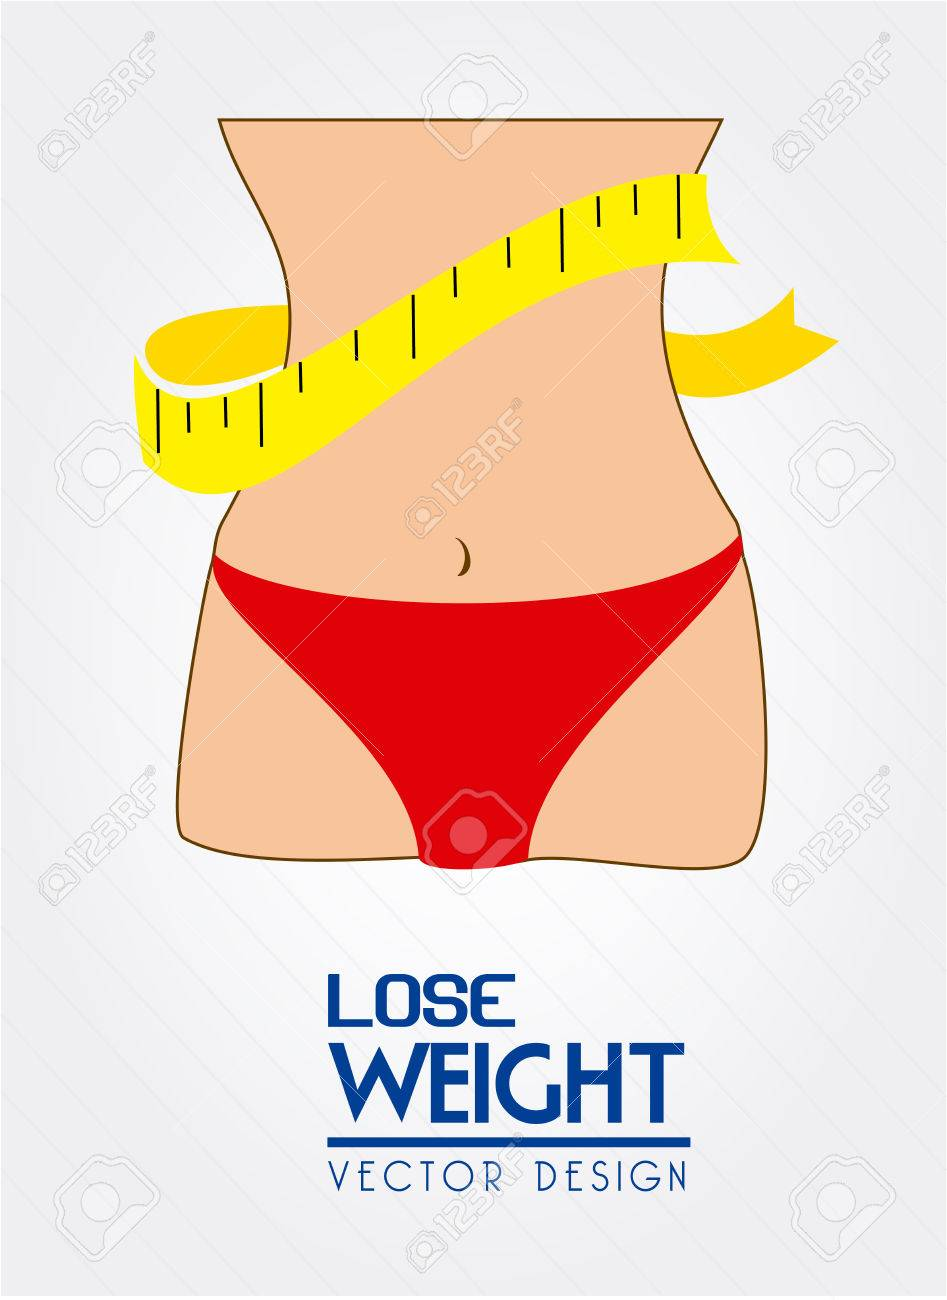 lose weight design over white background vector illustration Stock Vector - 22335076